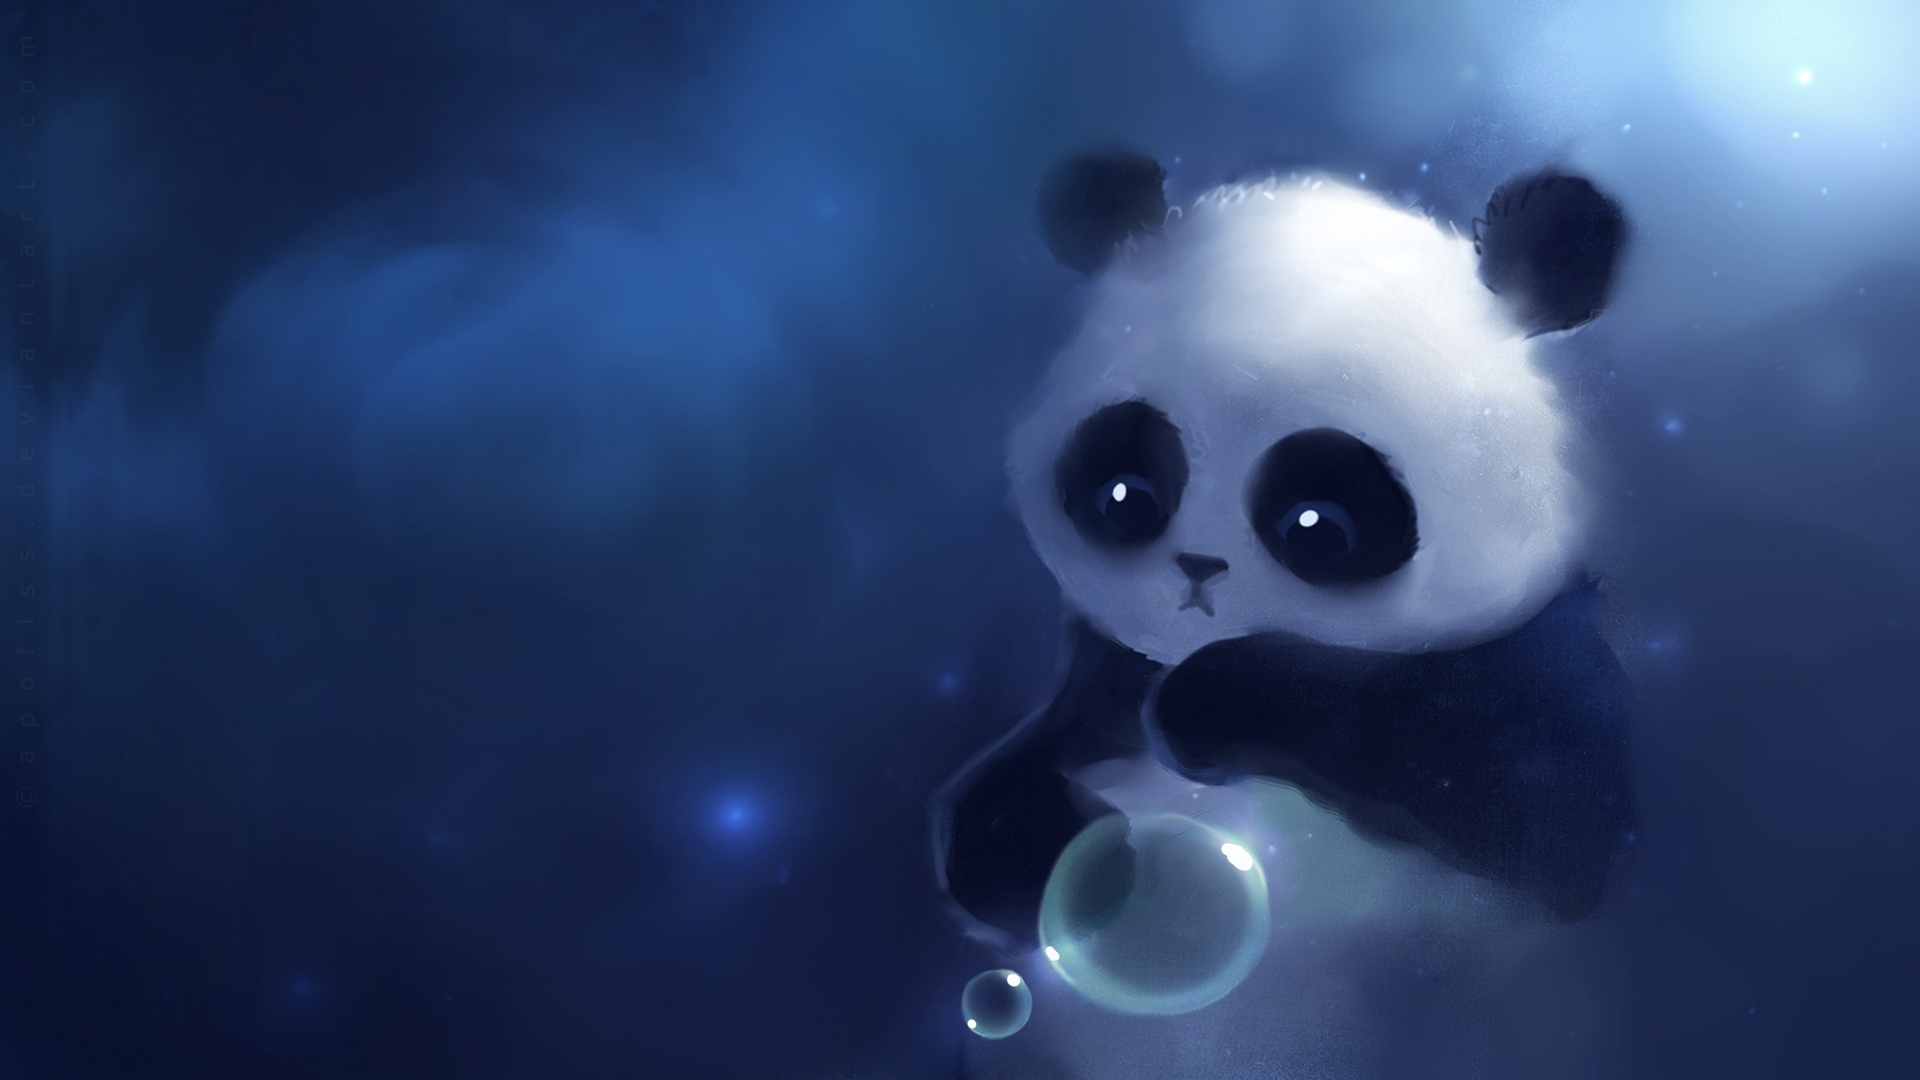 41806 download wallpaper Animals, Pictures, Pandas screensavers and pictures for free